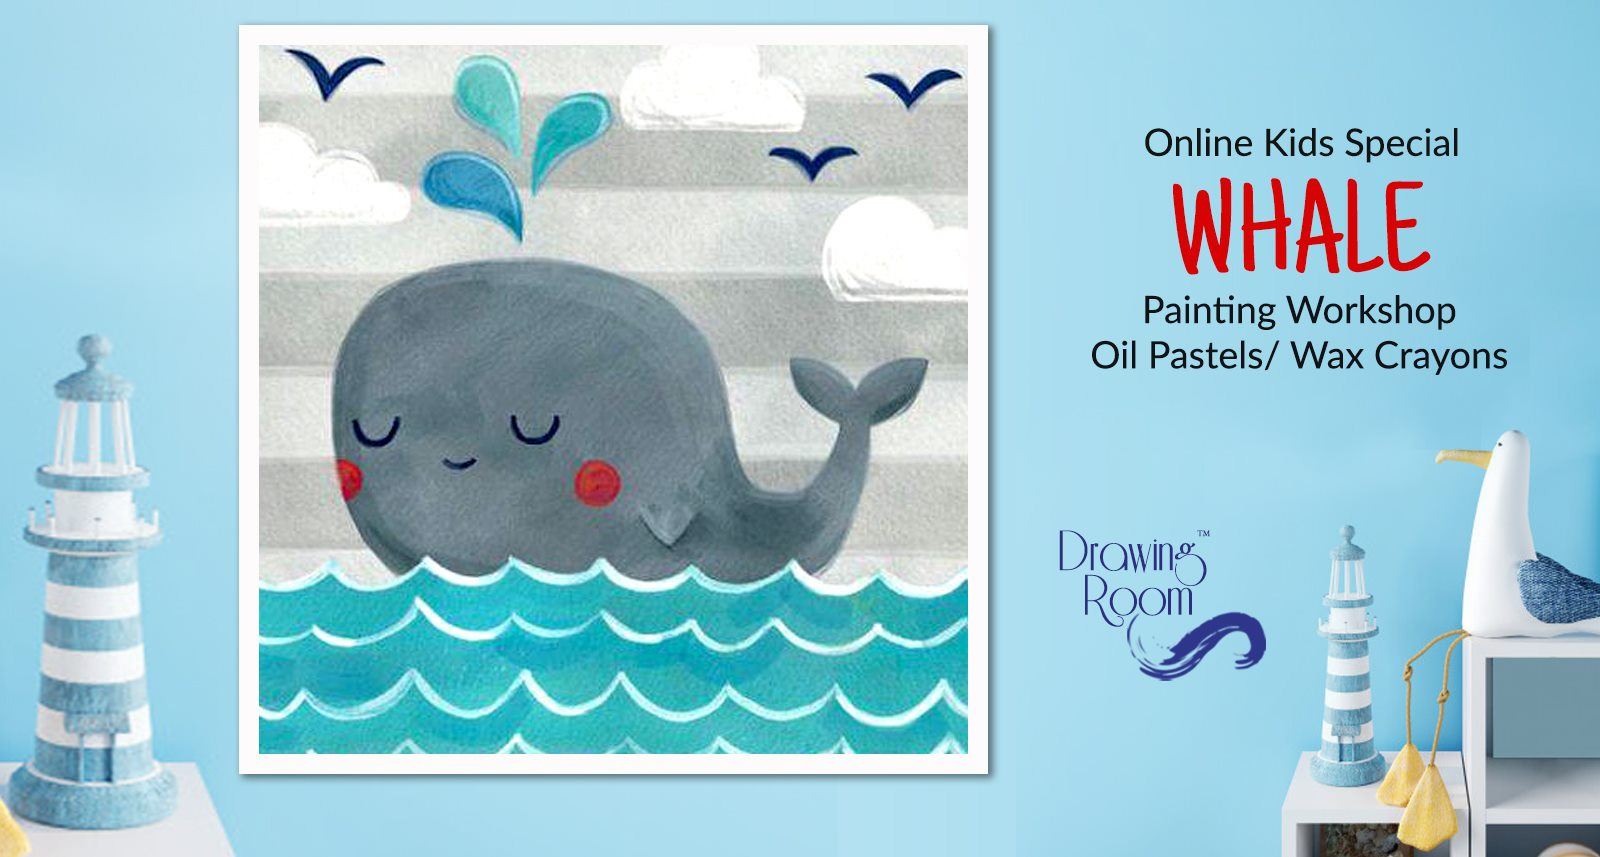 Online Kids Special Whale Painting Workshop